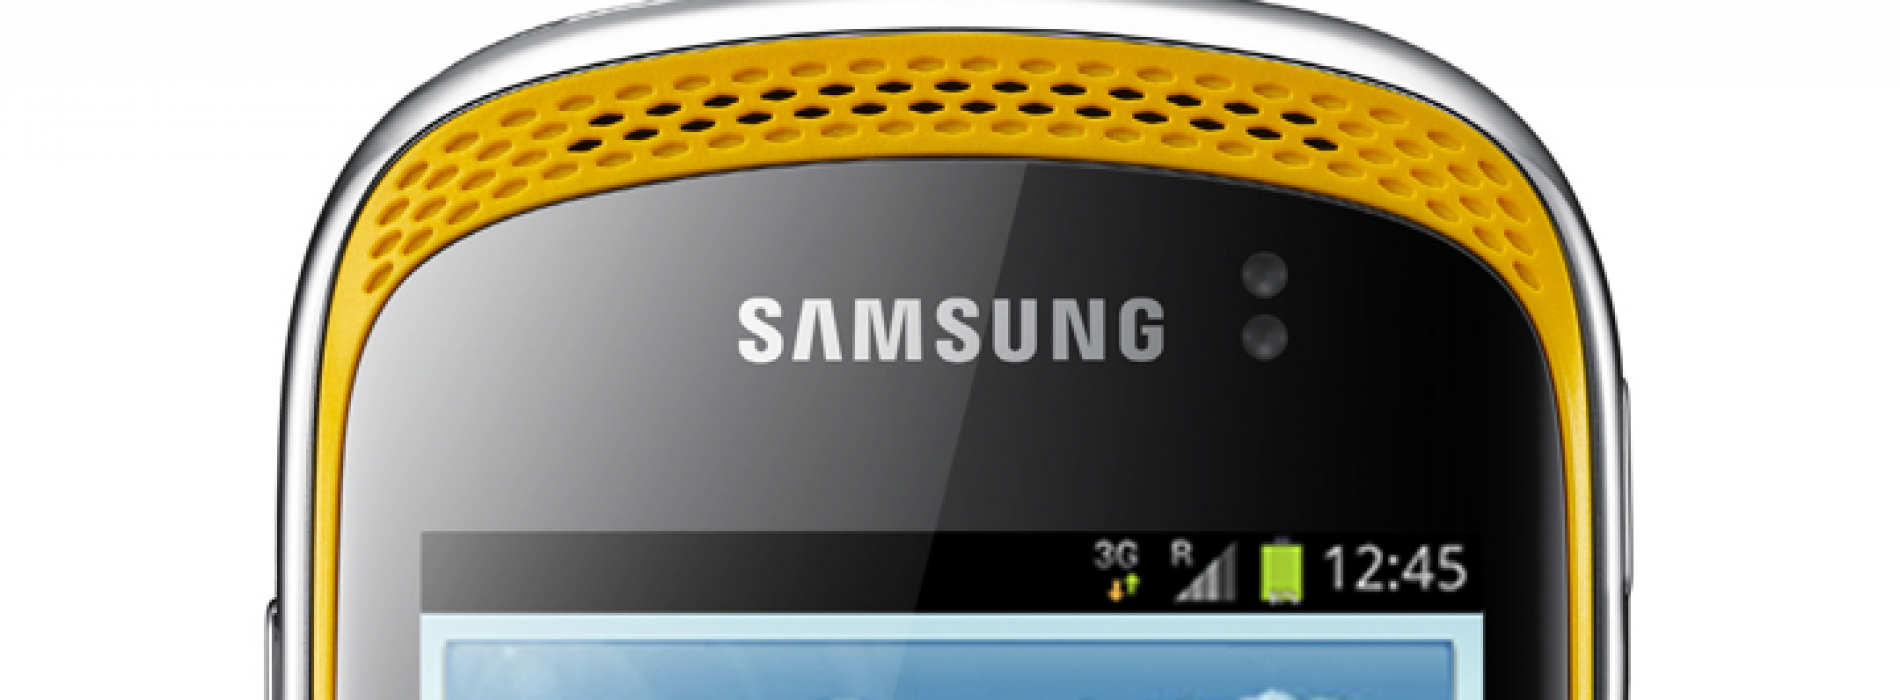 Samsung sings praises of new Android 4.0-powered Galaxy Music